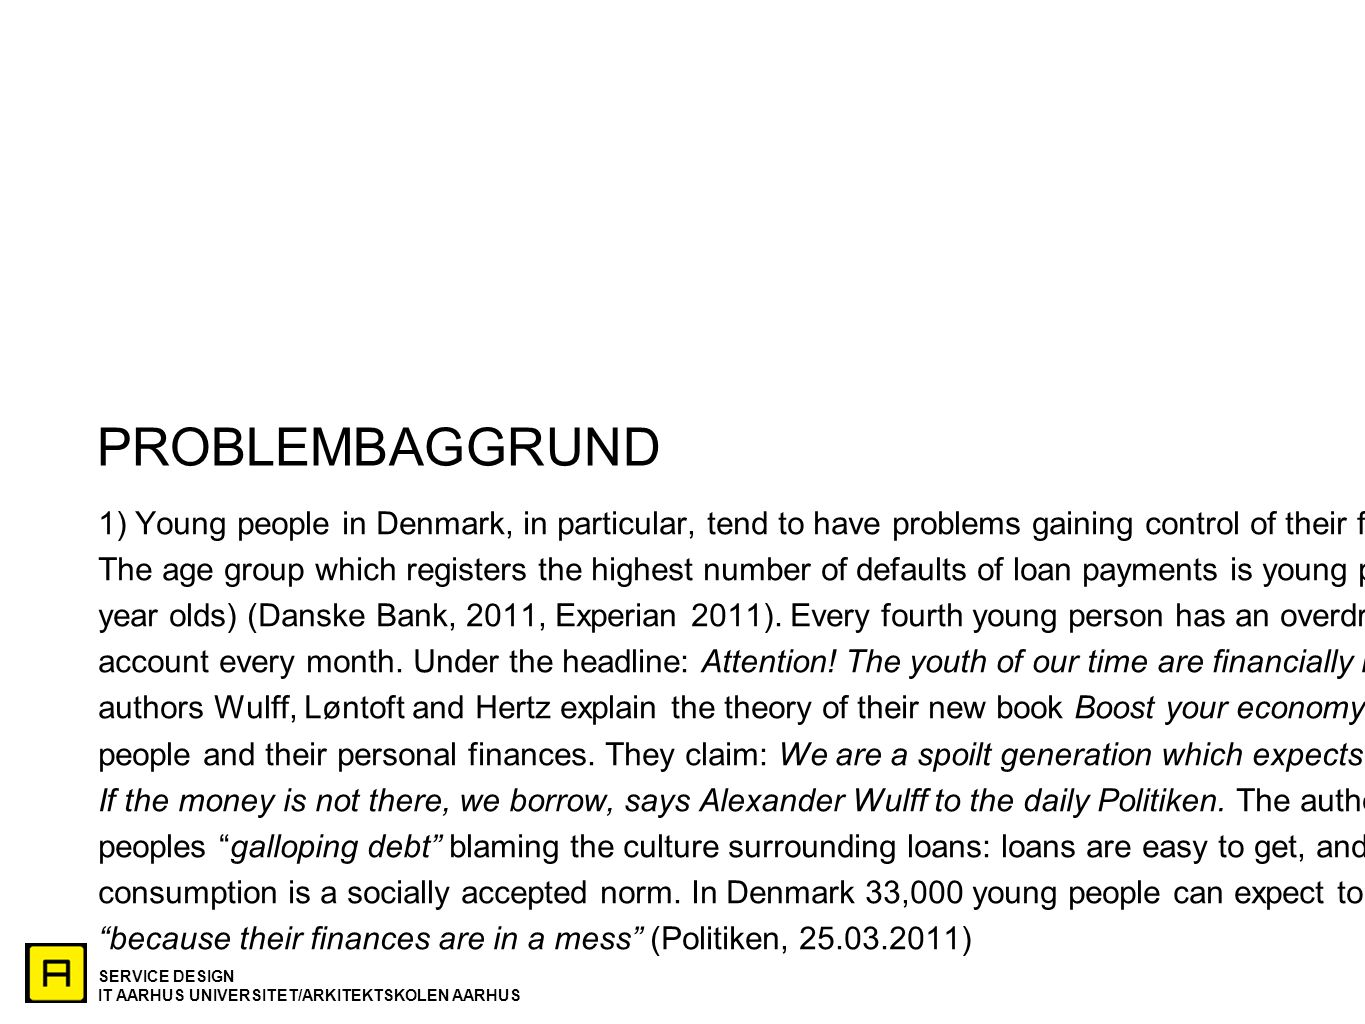 PROBLEMBAGGRUND 1) Young people in Denmark, in particular, tend to have problems gaining control of their finances.